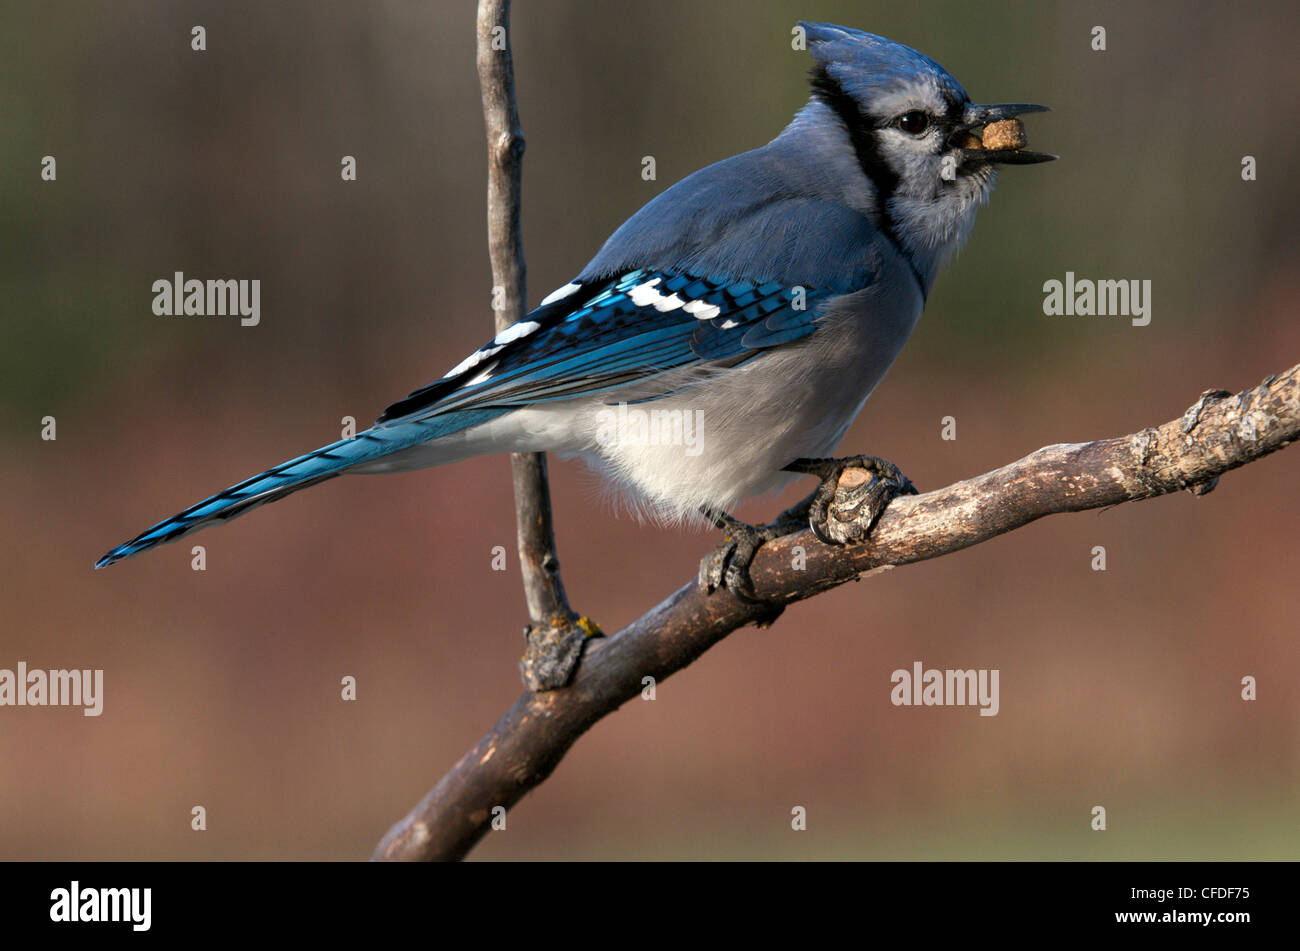 The Blue Jay Cyanocittcristata Passerine bird - Stock Image